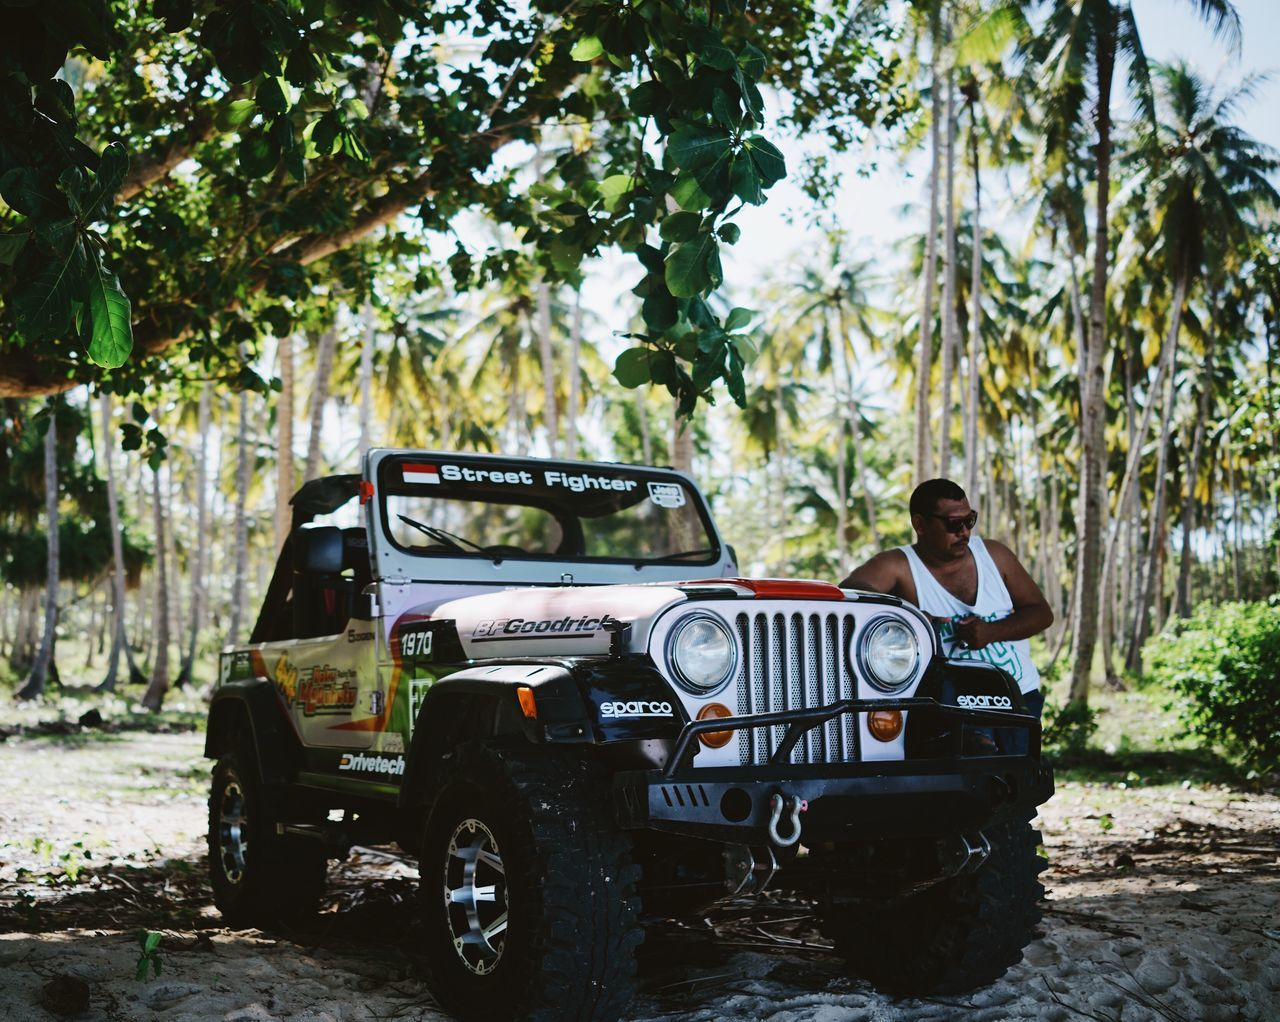 ASIA Atv Cool Guy Day INDONESIA Jeep Land Vehicle Maluku  Man Mode Of Transport Moluccas Morotaiisland Palm Trees Posing Shadow Transportation Travel Tree Tropical The Portraitist - 2017 EyeEm Awards